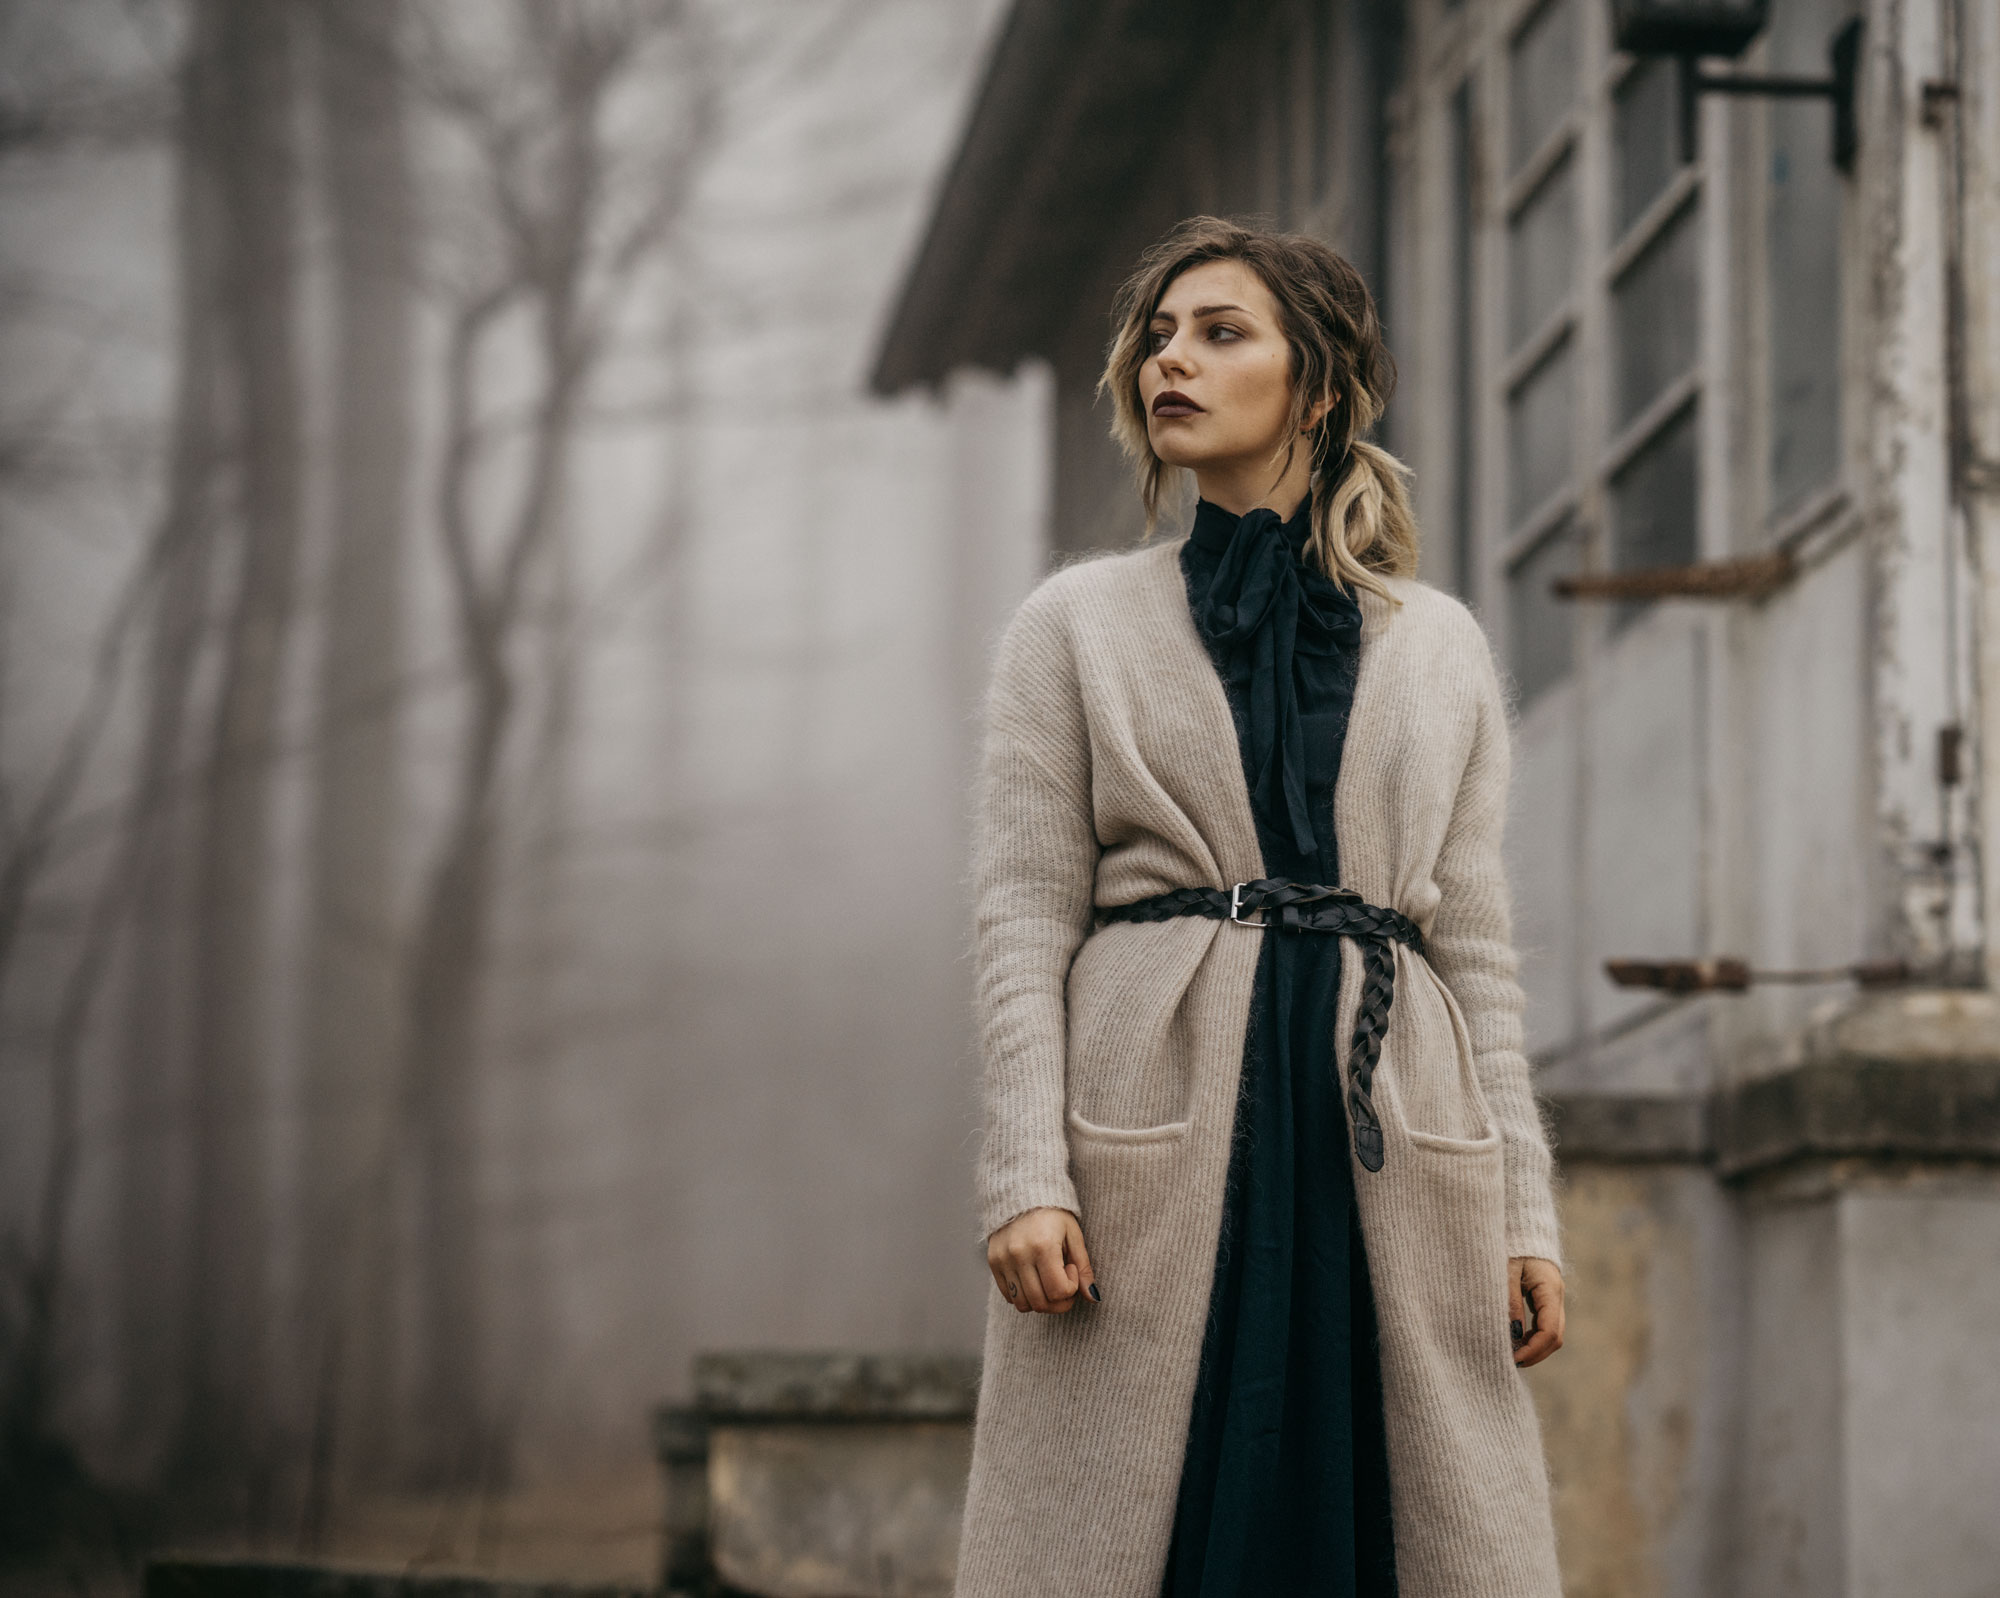 Gespensterwald, Ostsee | Fashion Editorial | shooting style: emotional, sad, moody, forest